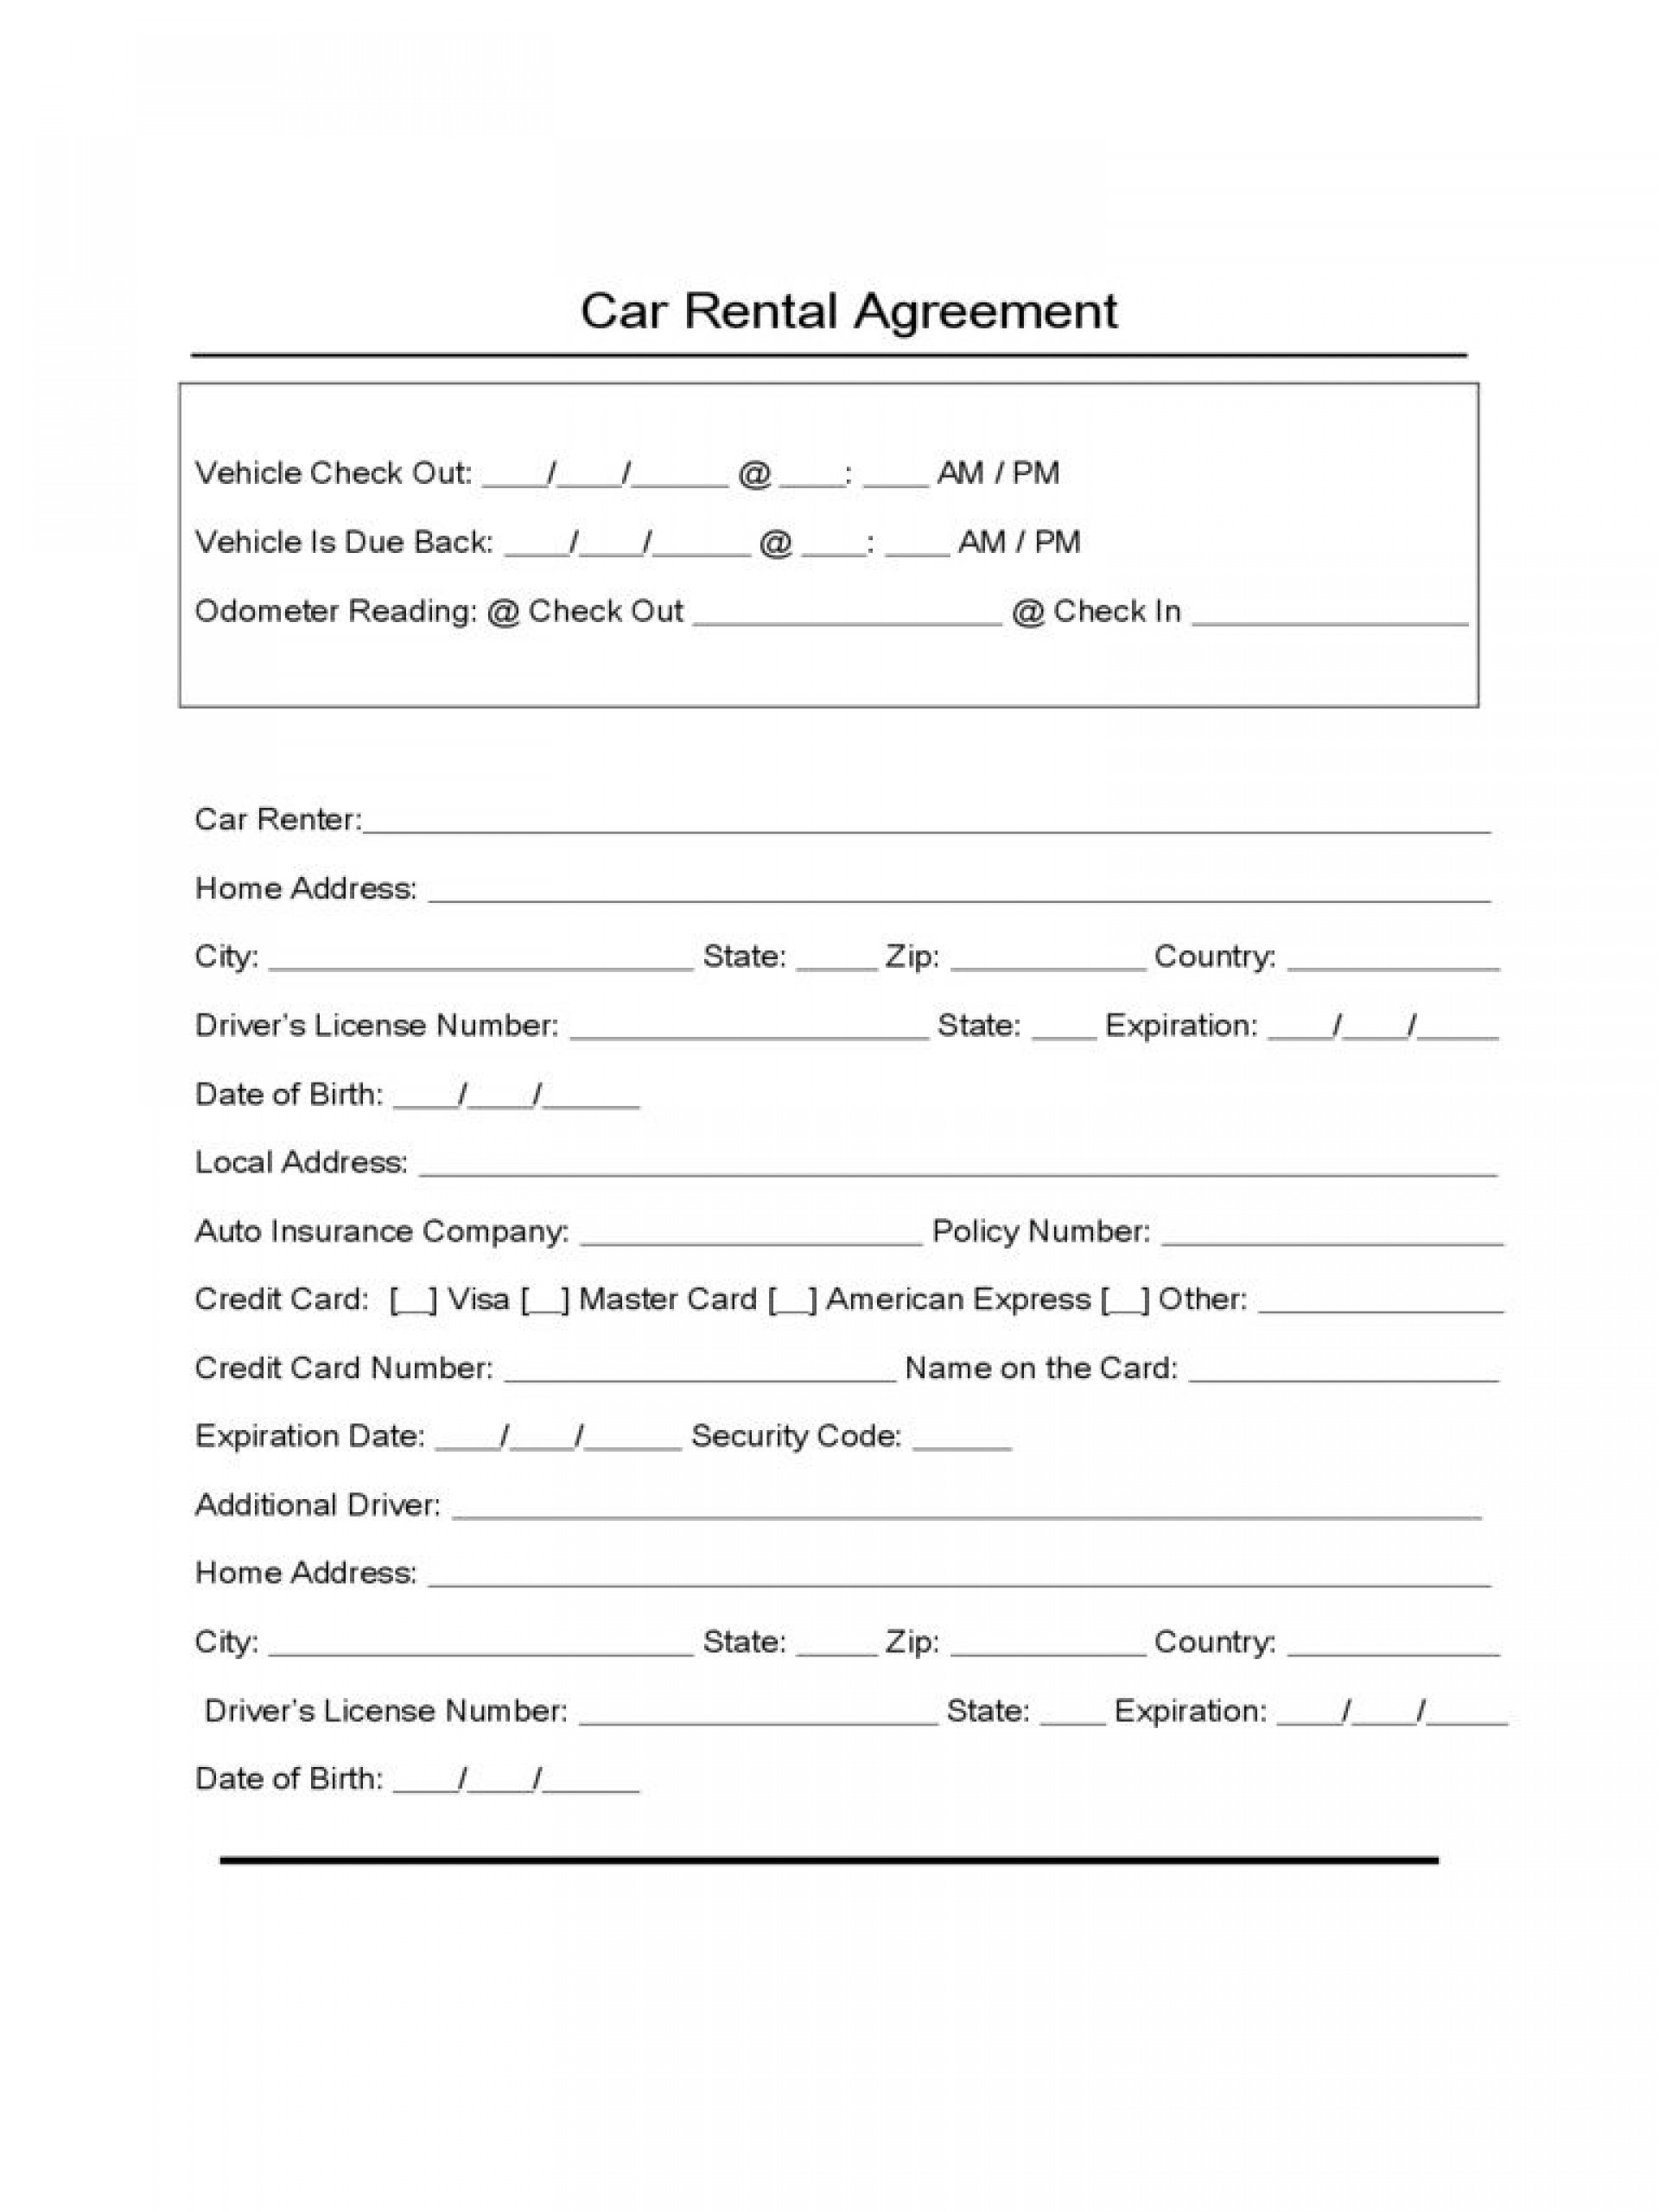 009 Top Car Lease Agreement Template High Definition  Vehicle Ontario Rental Singapore Leasing1920